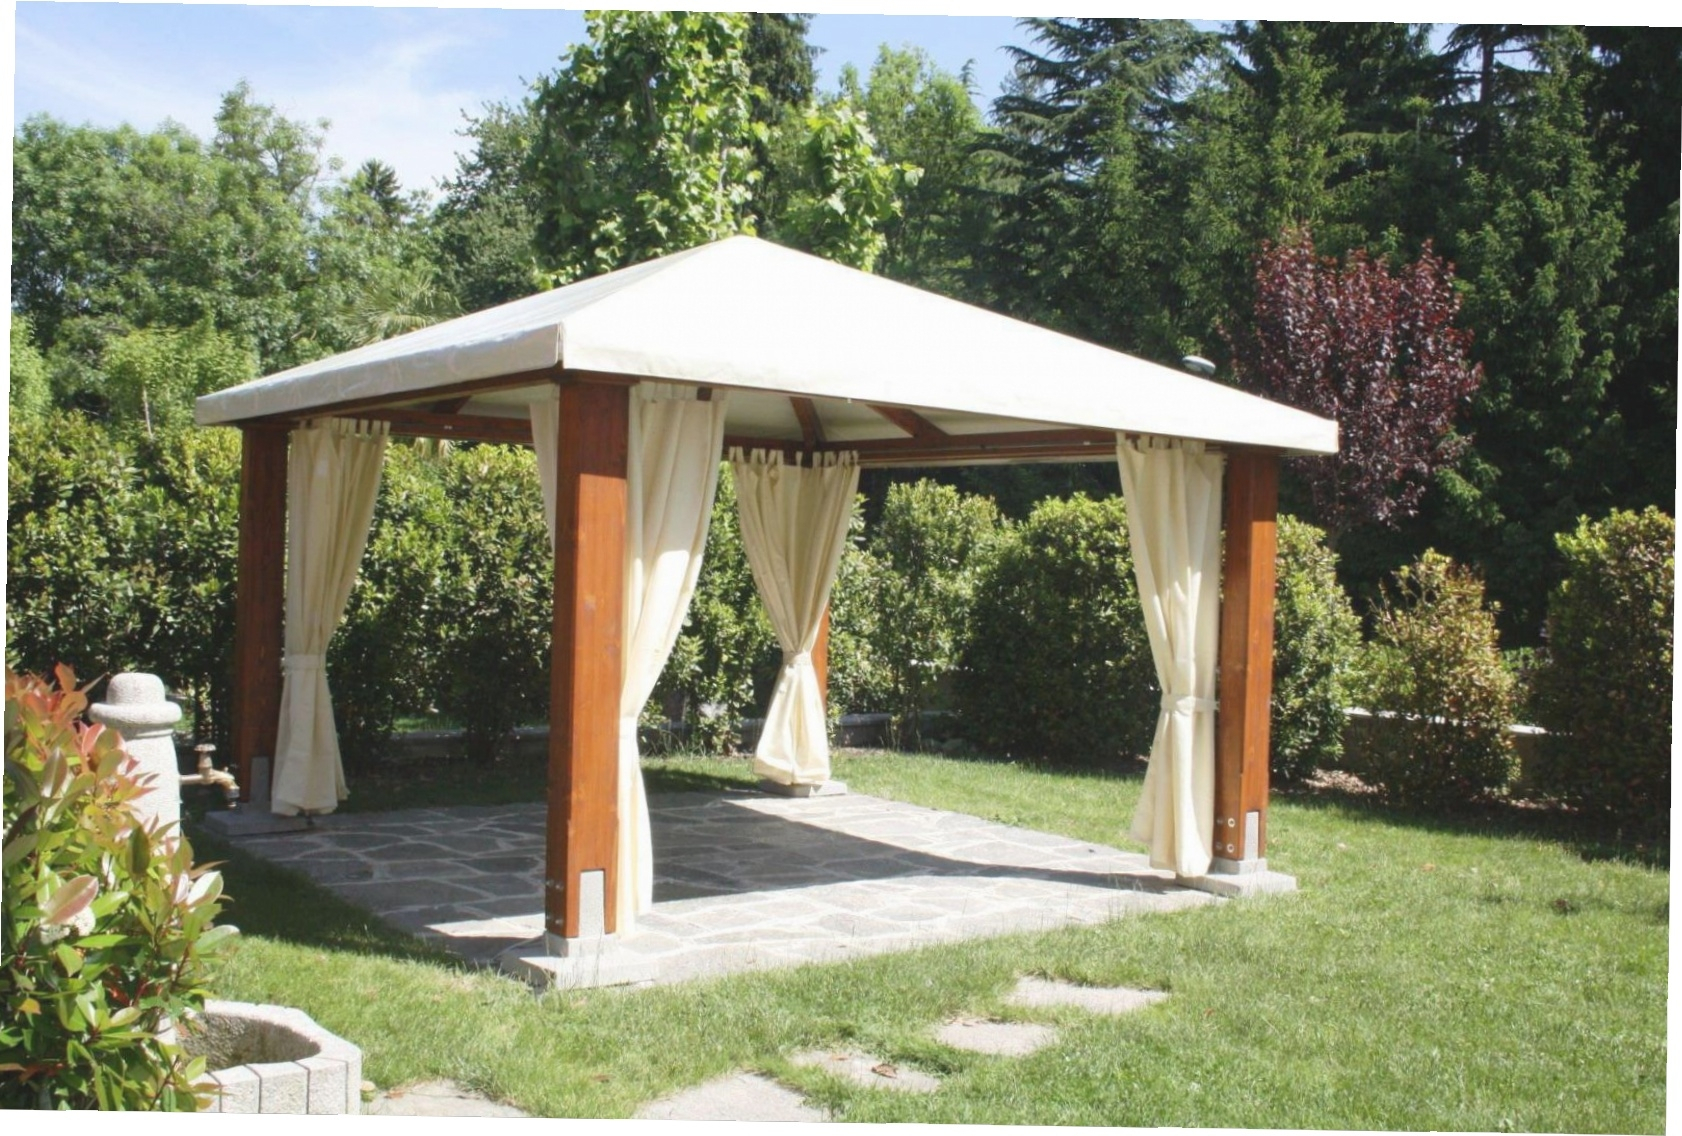 57 Outdoor Garden Gazebo Outdoor Garden Patio Gazebo Metal Frame for Backyard Gazebo Ideas